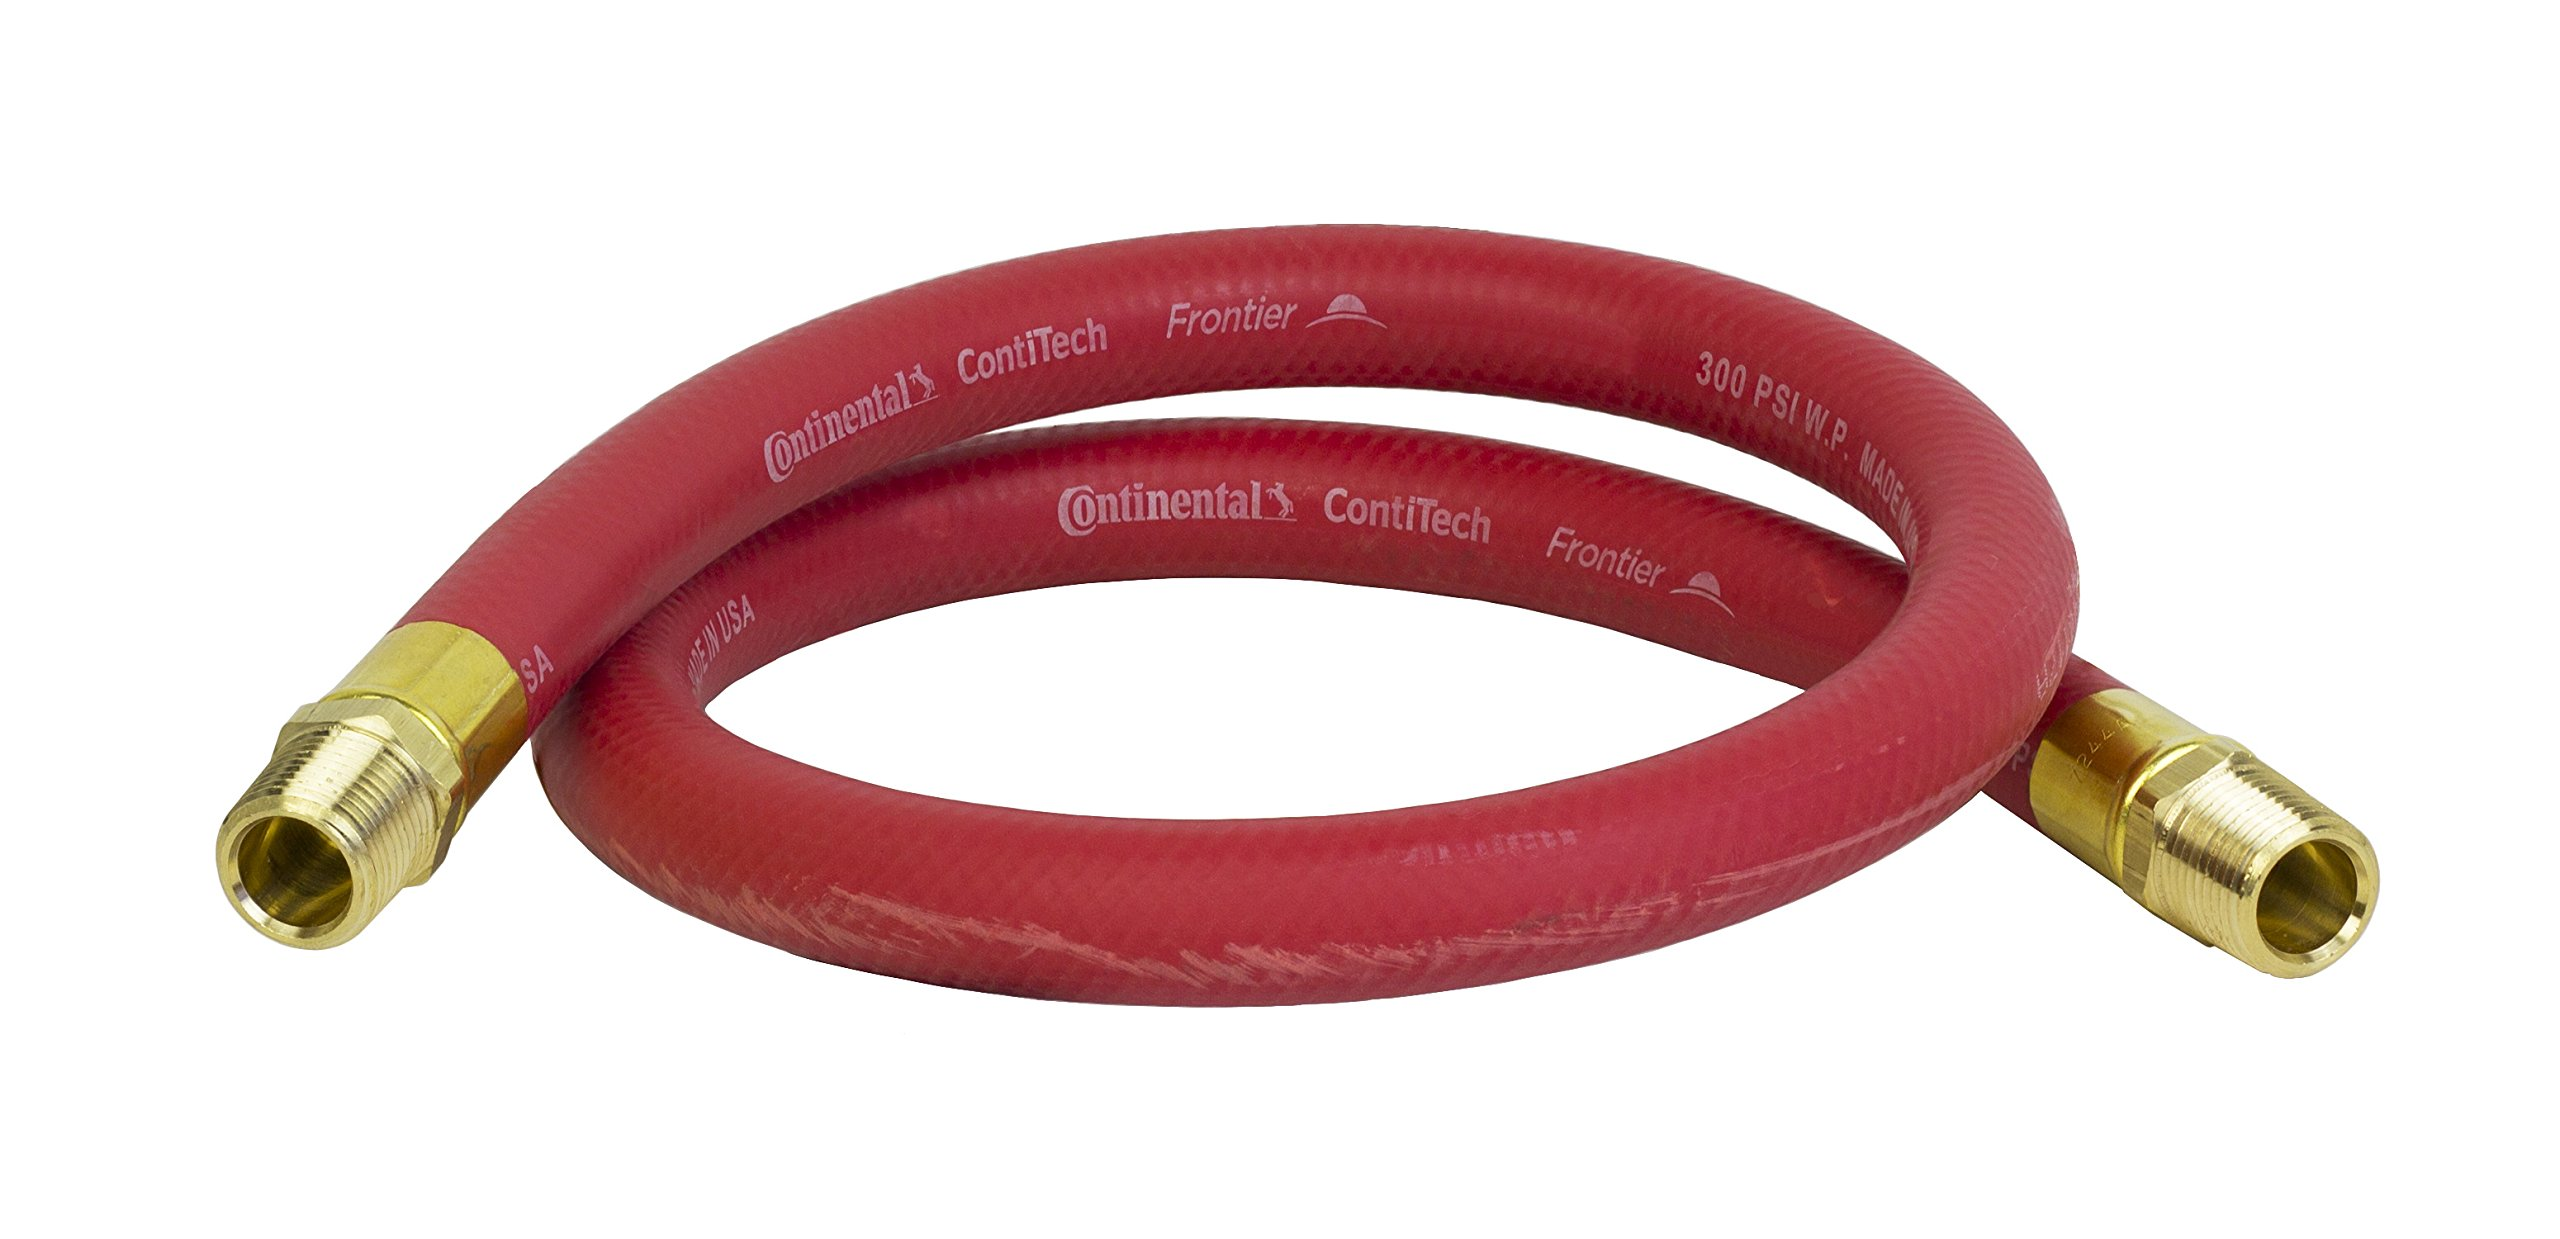 PneumaticPlus RED EPDM Synthetic Rubber Air & Water Hose 3/4'' ID x 1.15'' OD with 3/4'' NPT Male Fitting Connections (3 FT)